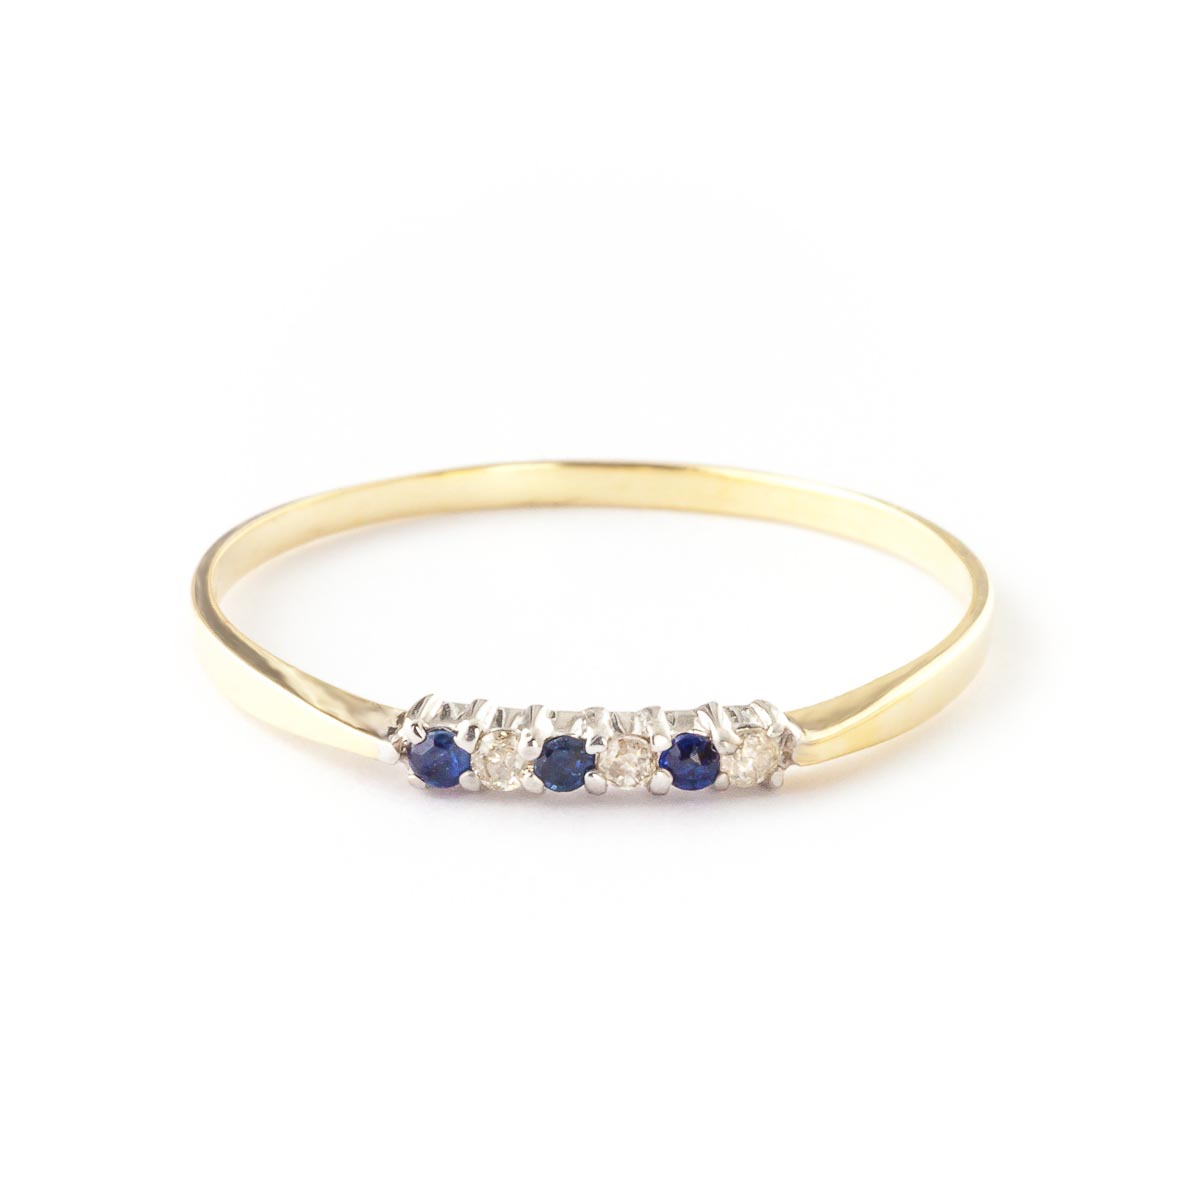 Diamond & Sapphire Eternity Ring in 18ct Gold